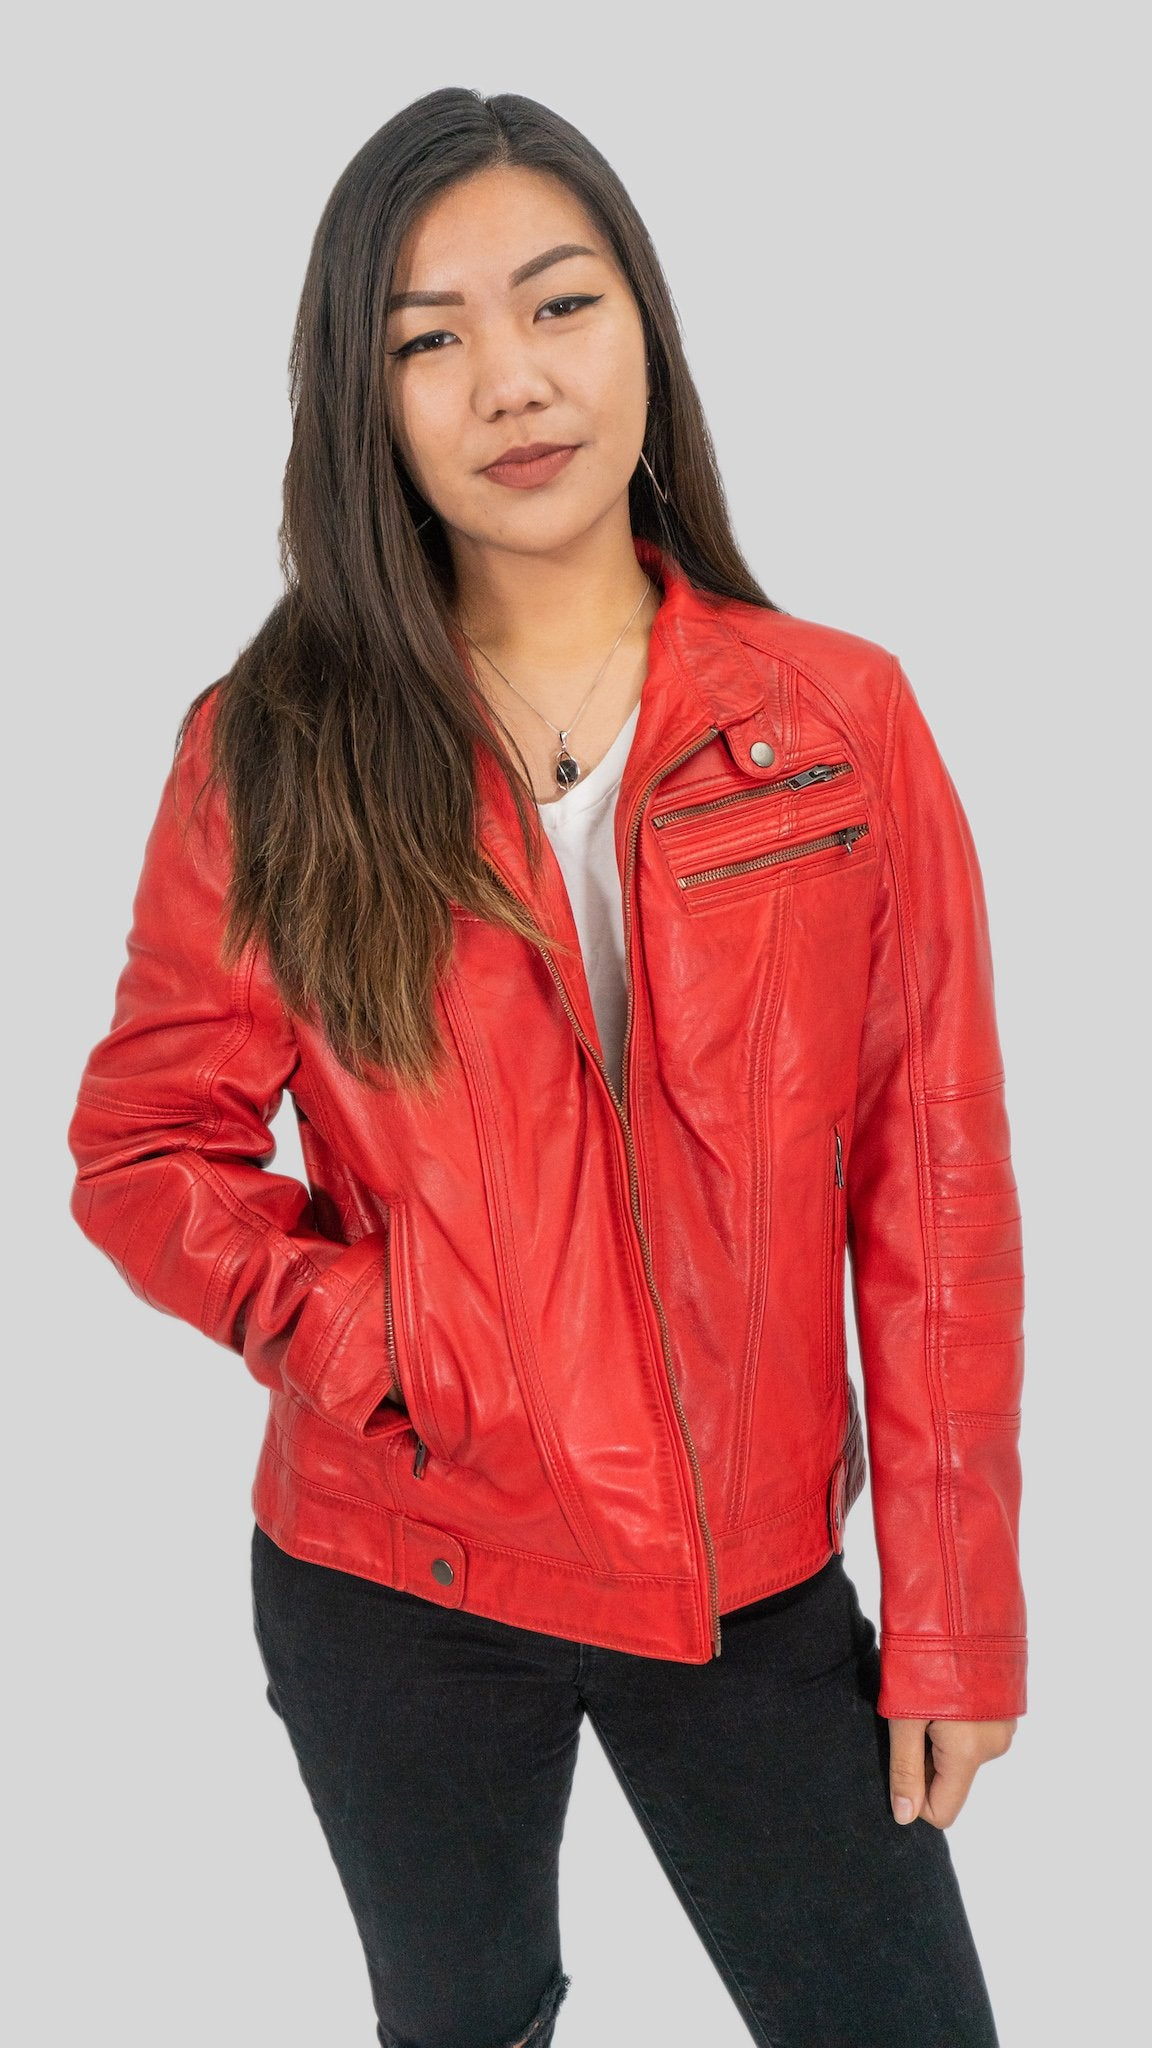 Ladies Elektra Washed Leather Jacket Spring Red-Womens Leather Jacket-Fadcloset-XS-Red-FADCLOSET CA